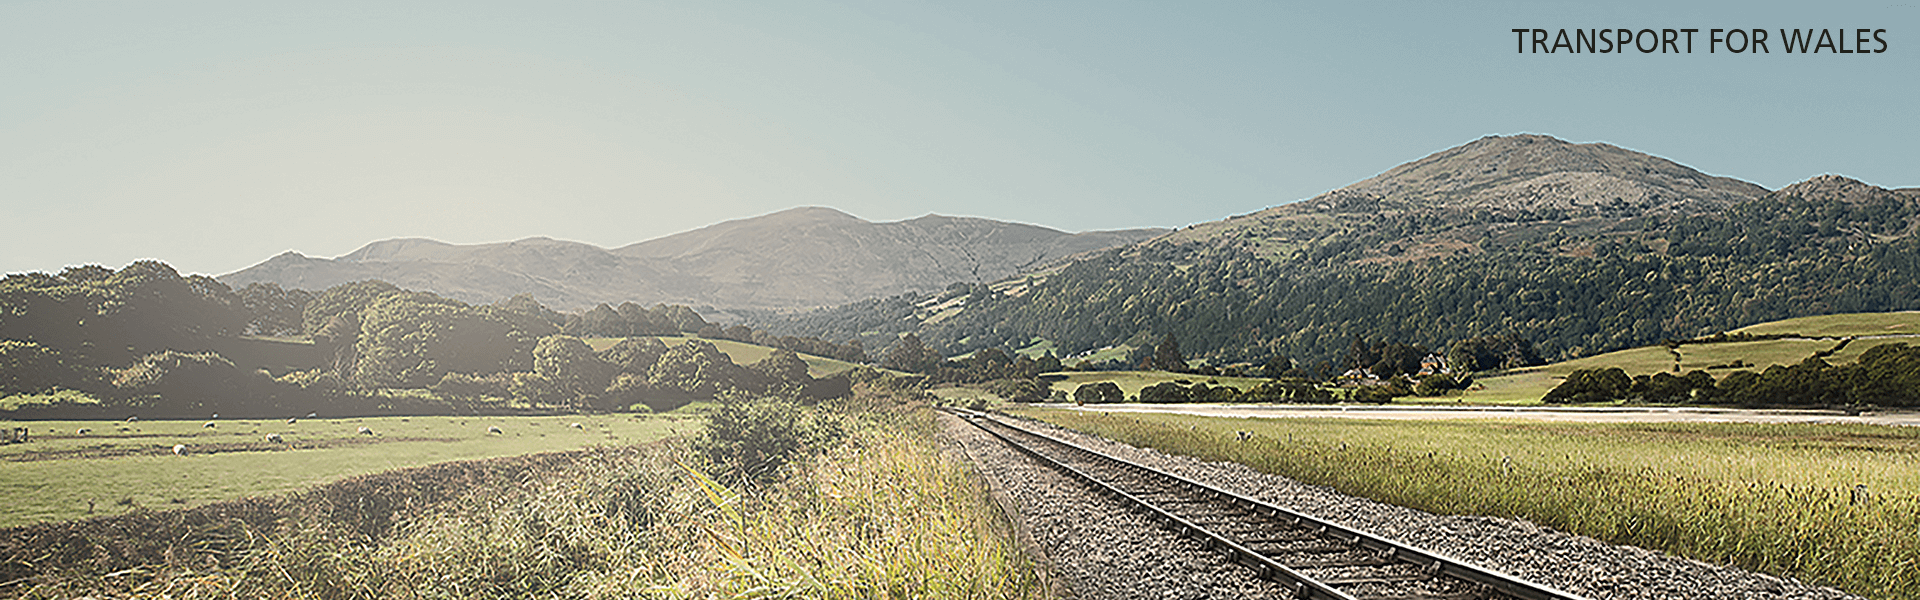 A photo of a railway track in Wales